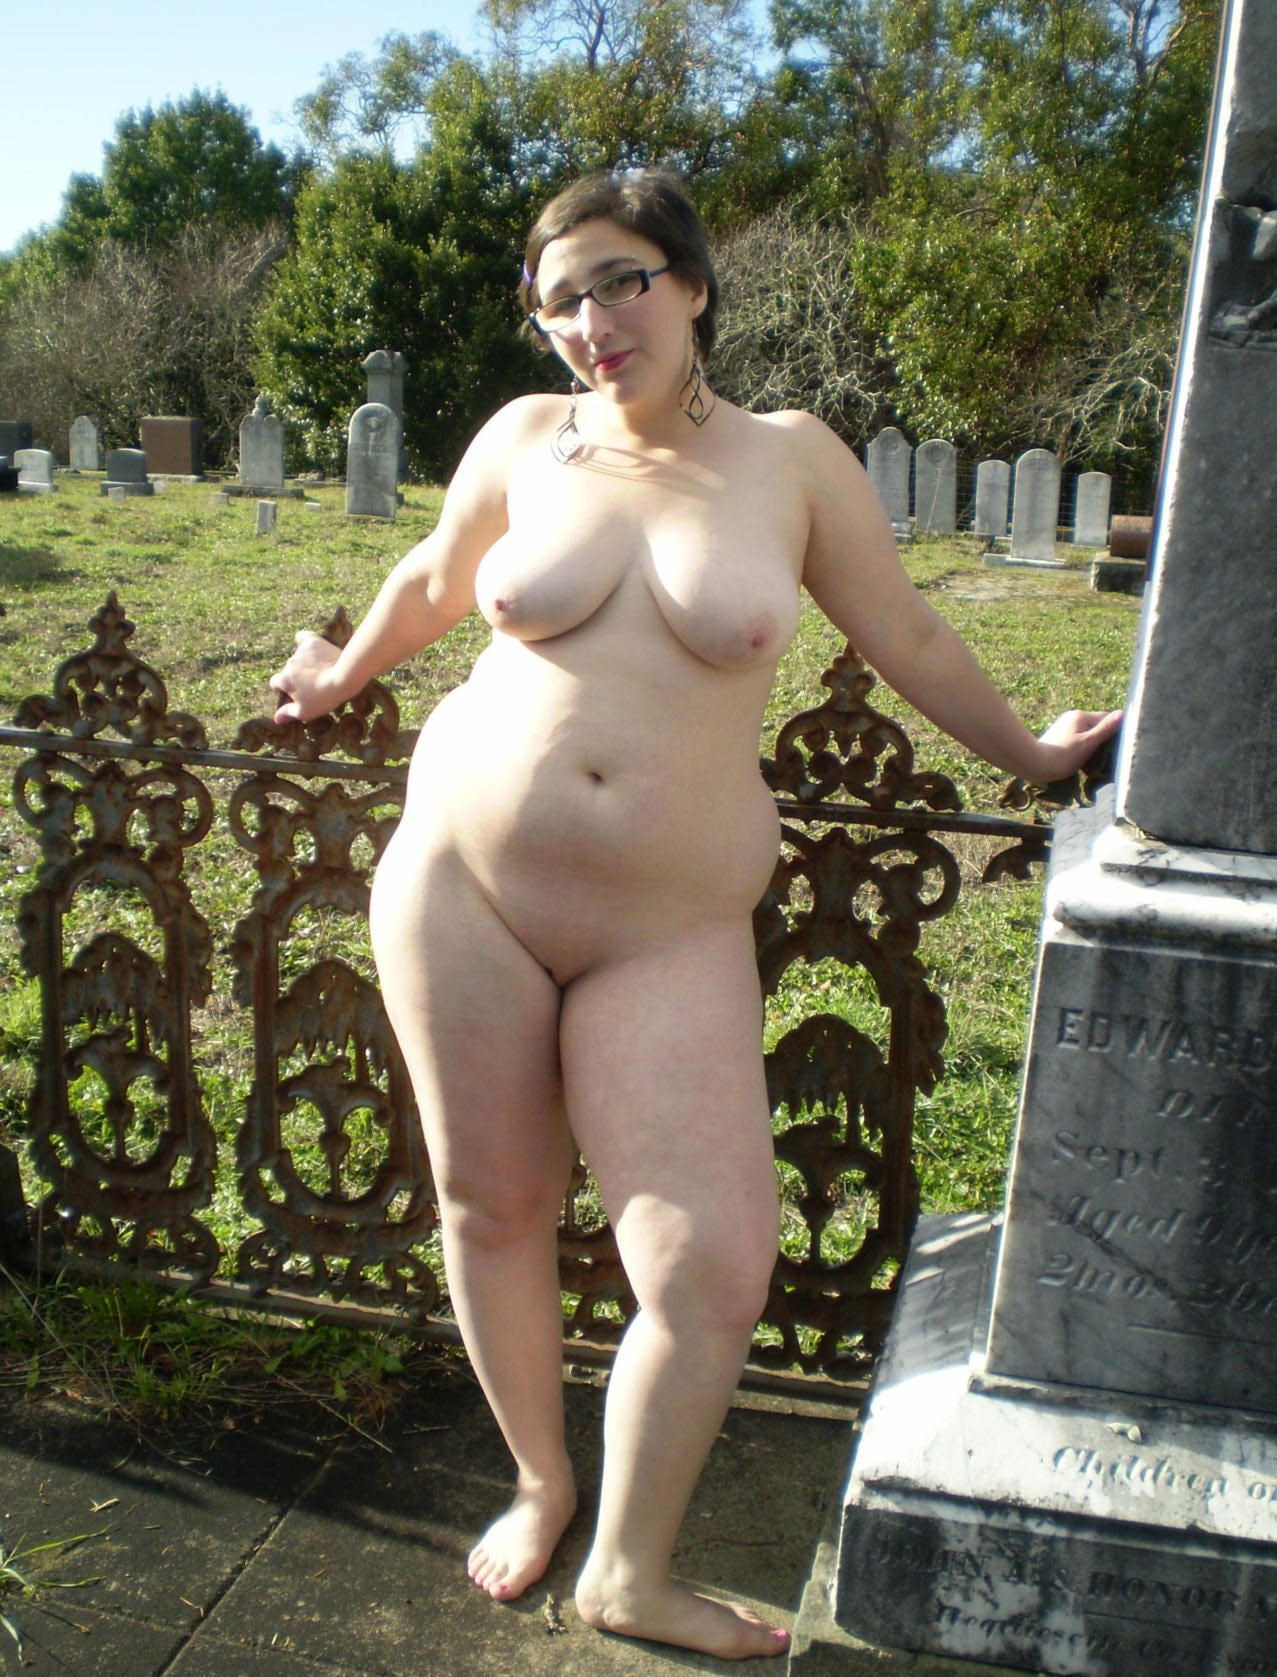 Opinion Chubby nudist women agree